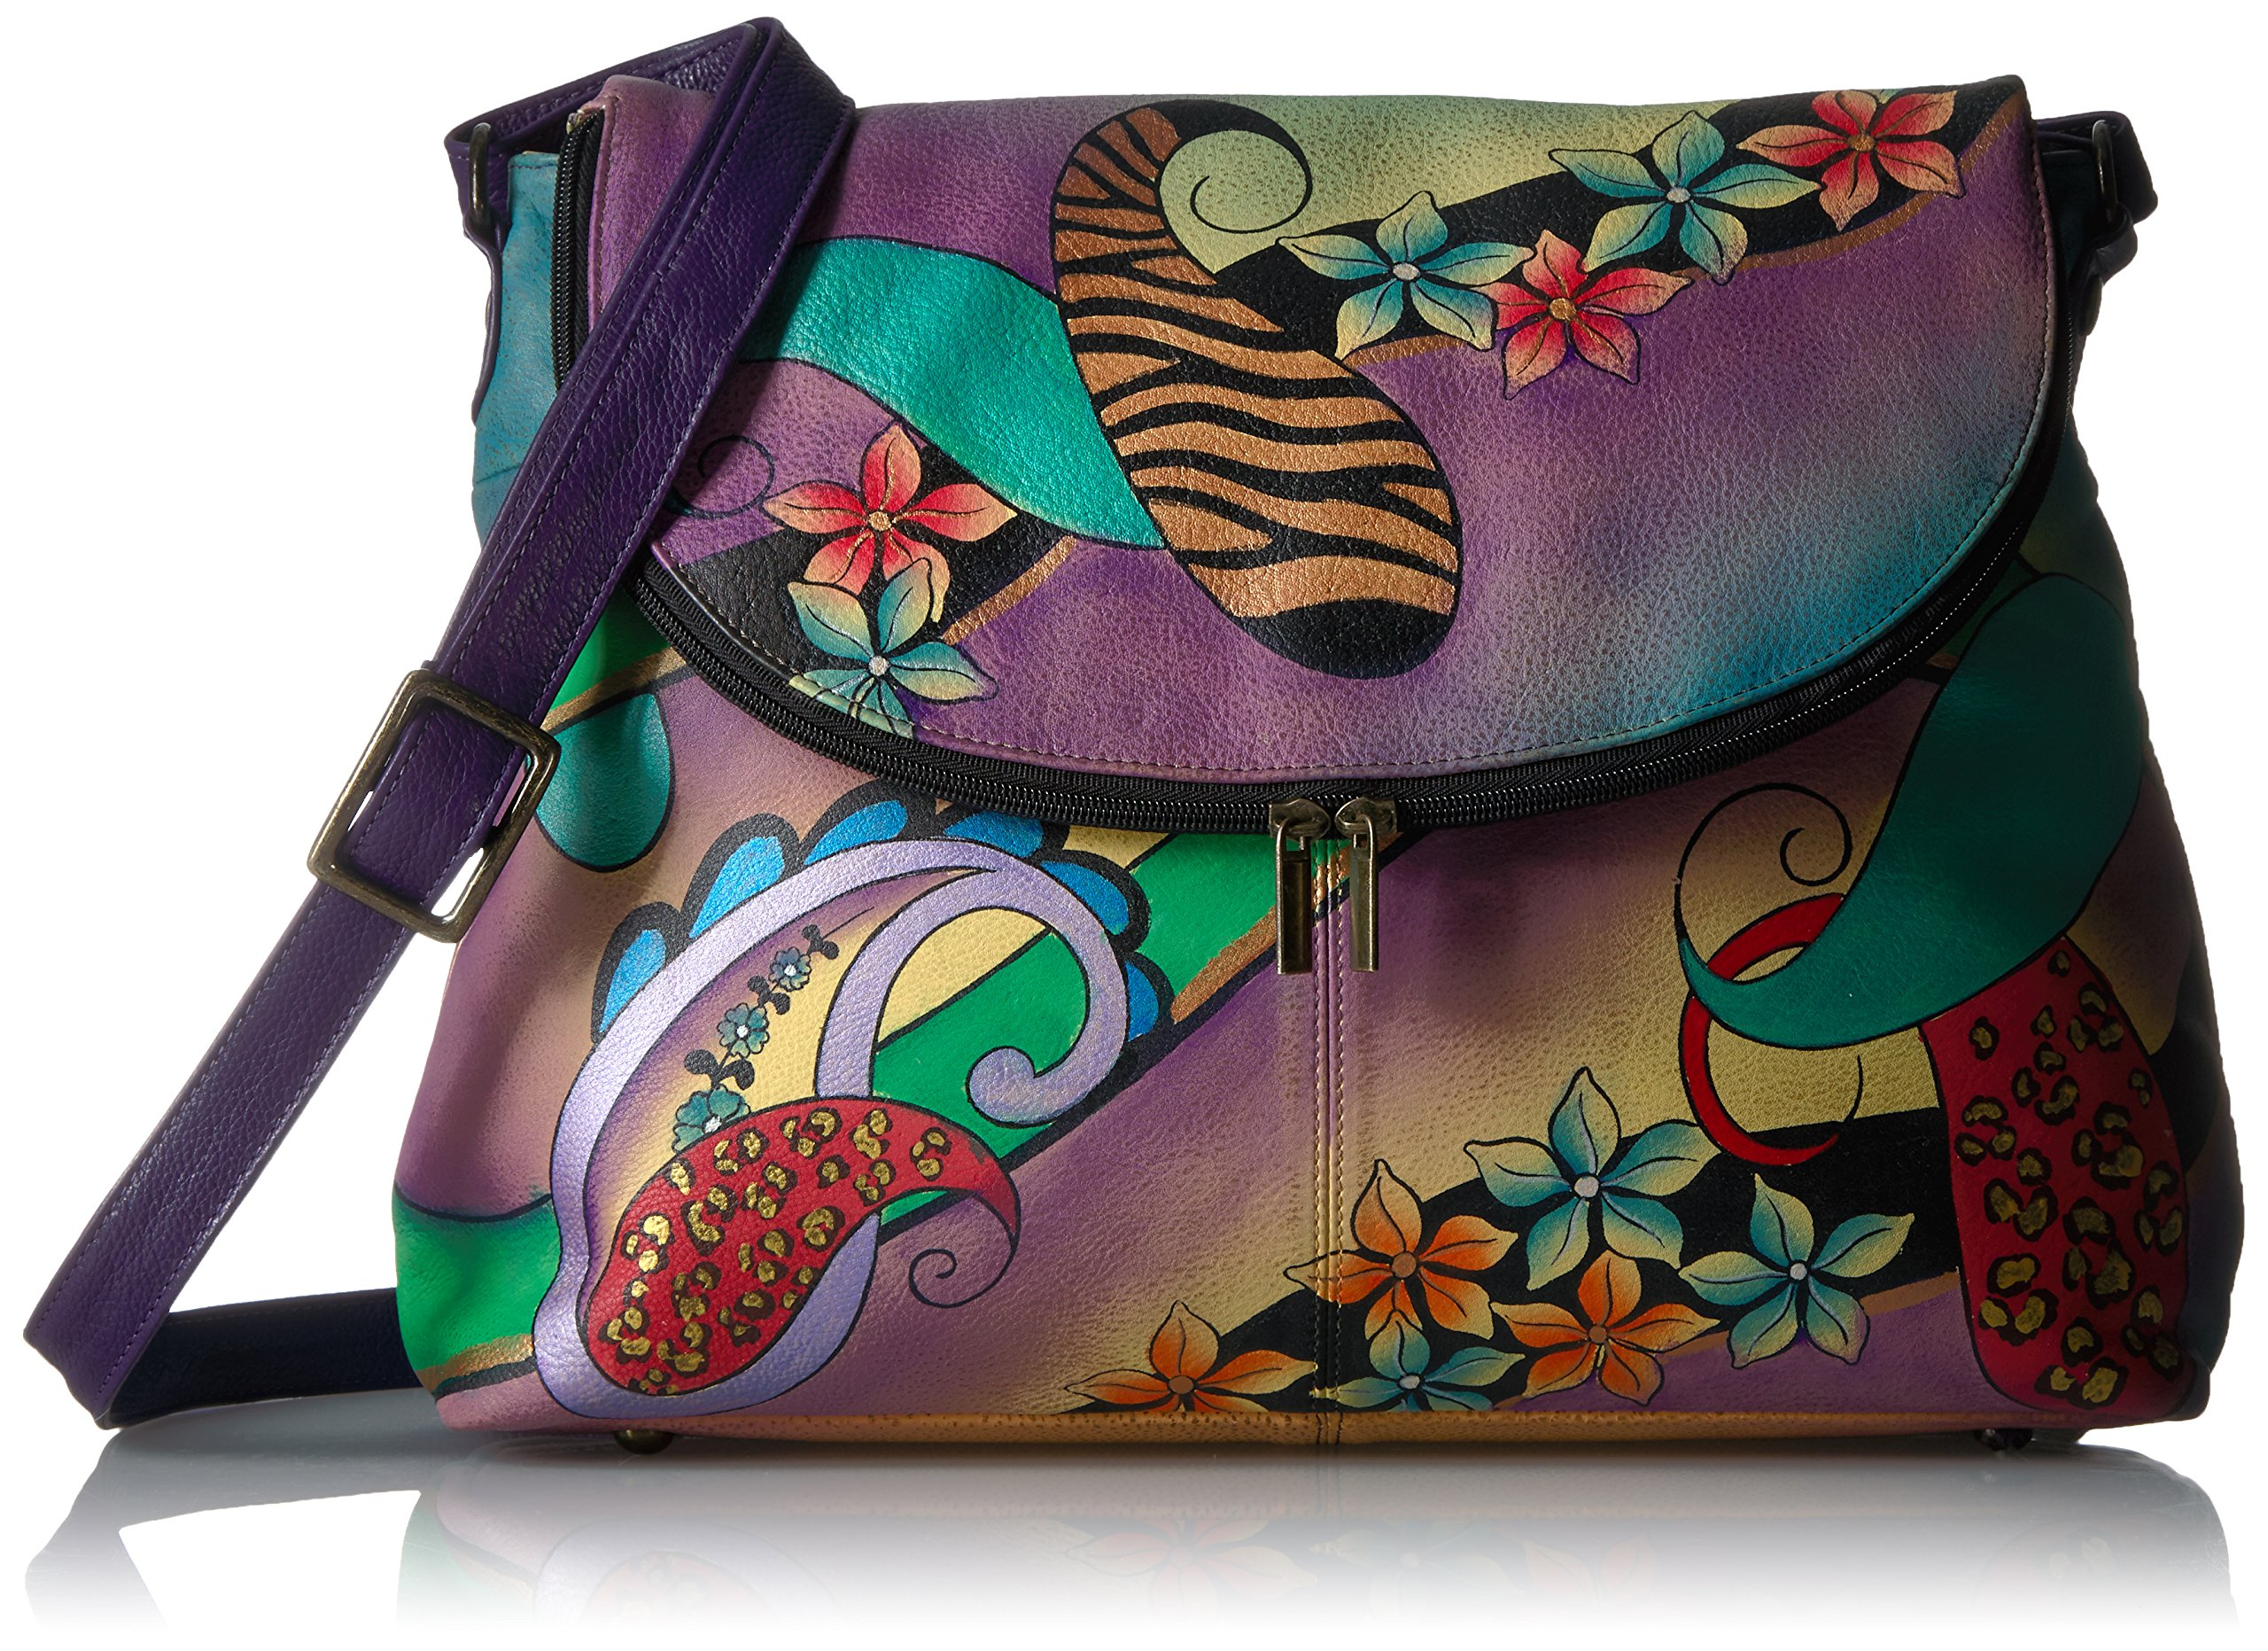 Anuschka Hand Painted Large Flap Bag, Pcl-E-Paisley Collage Egg Plant